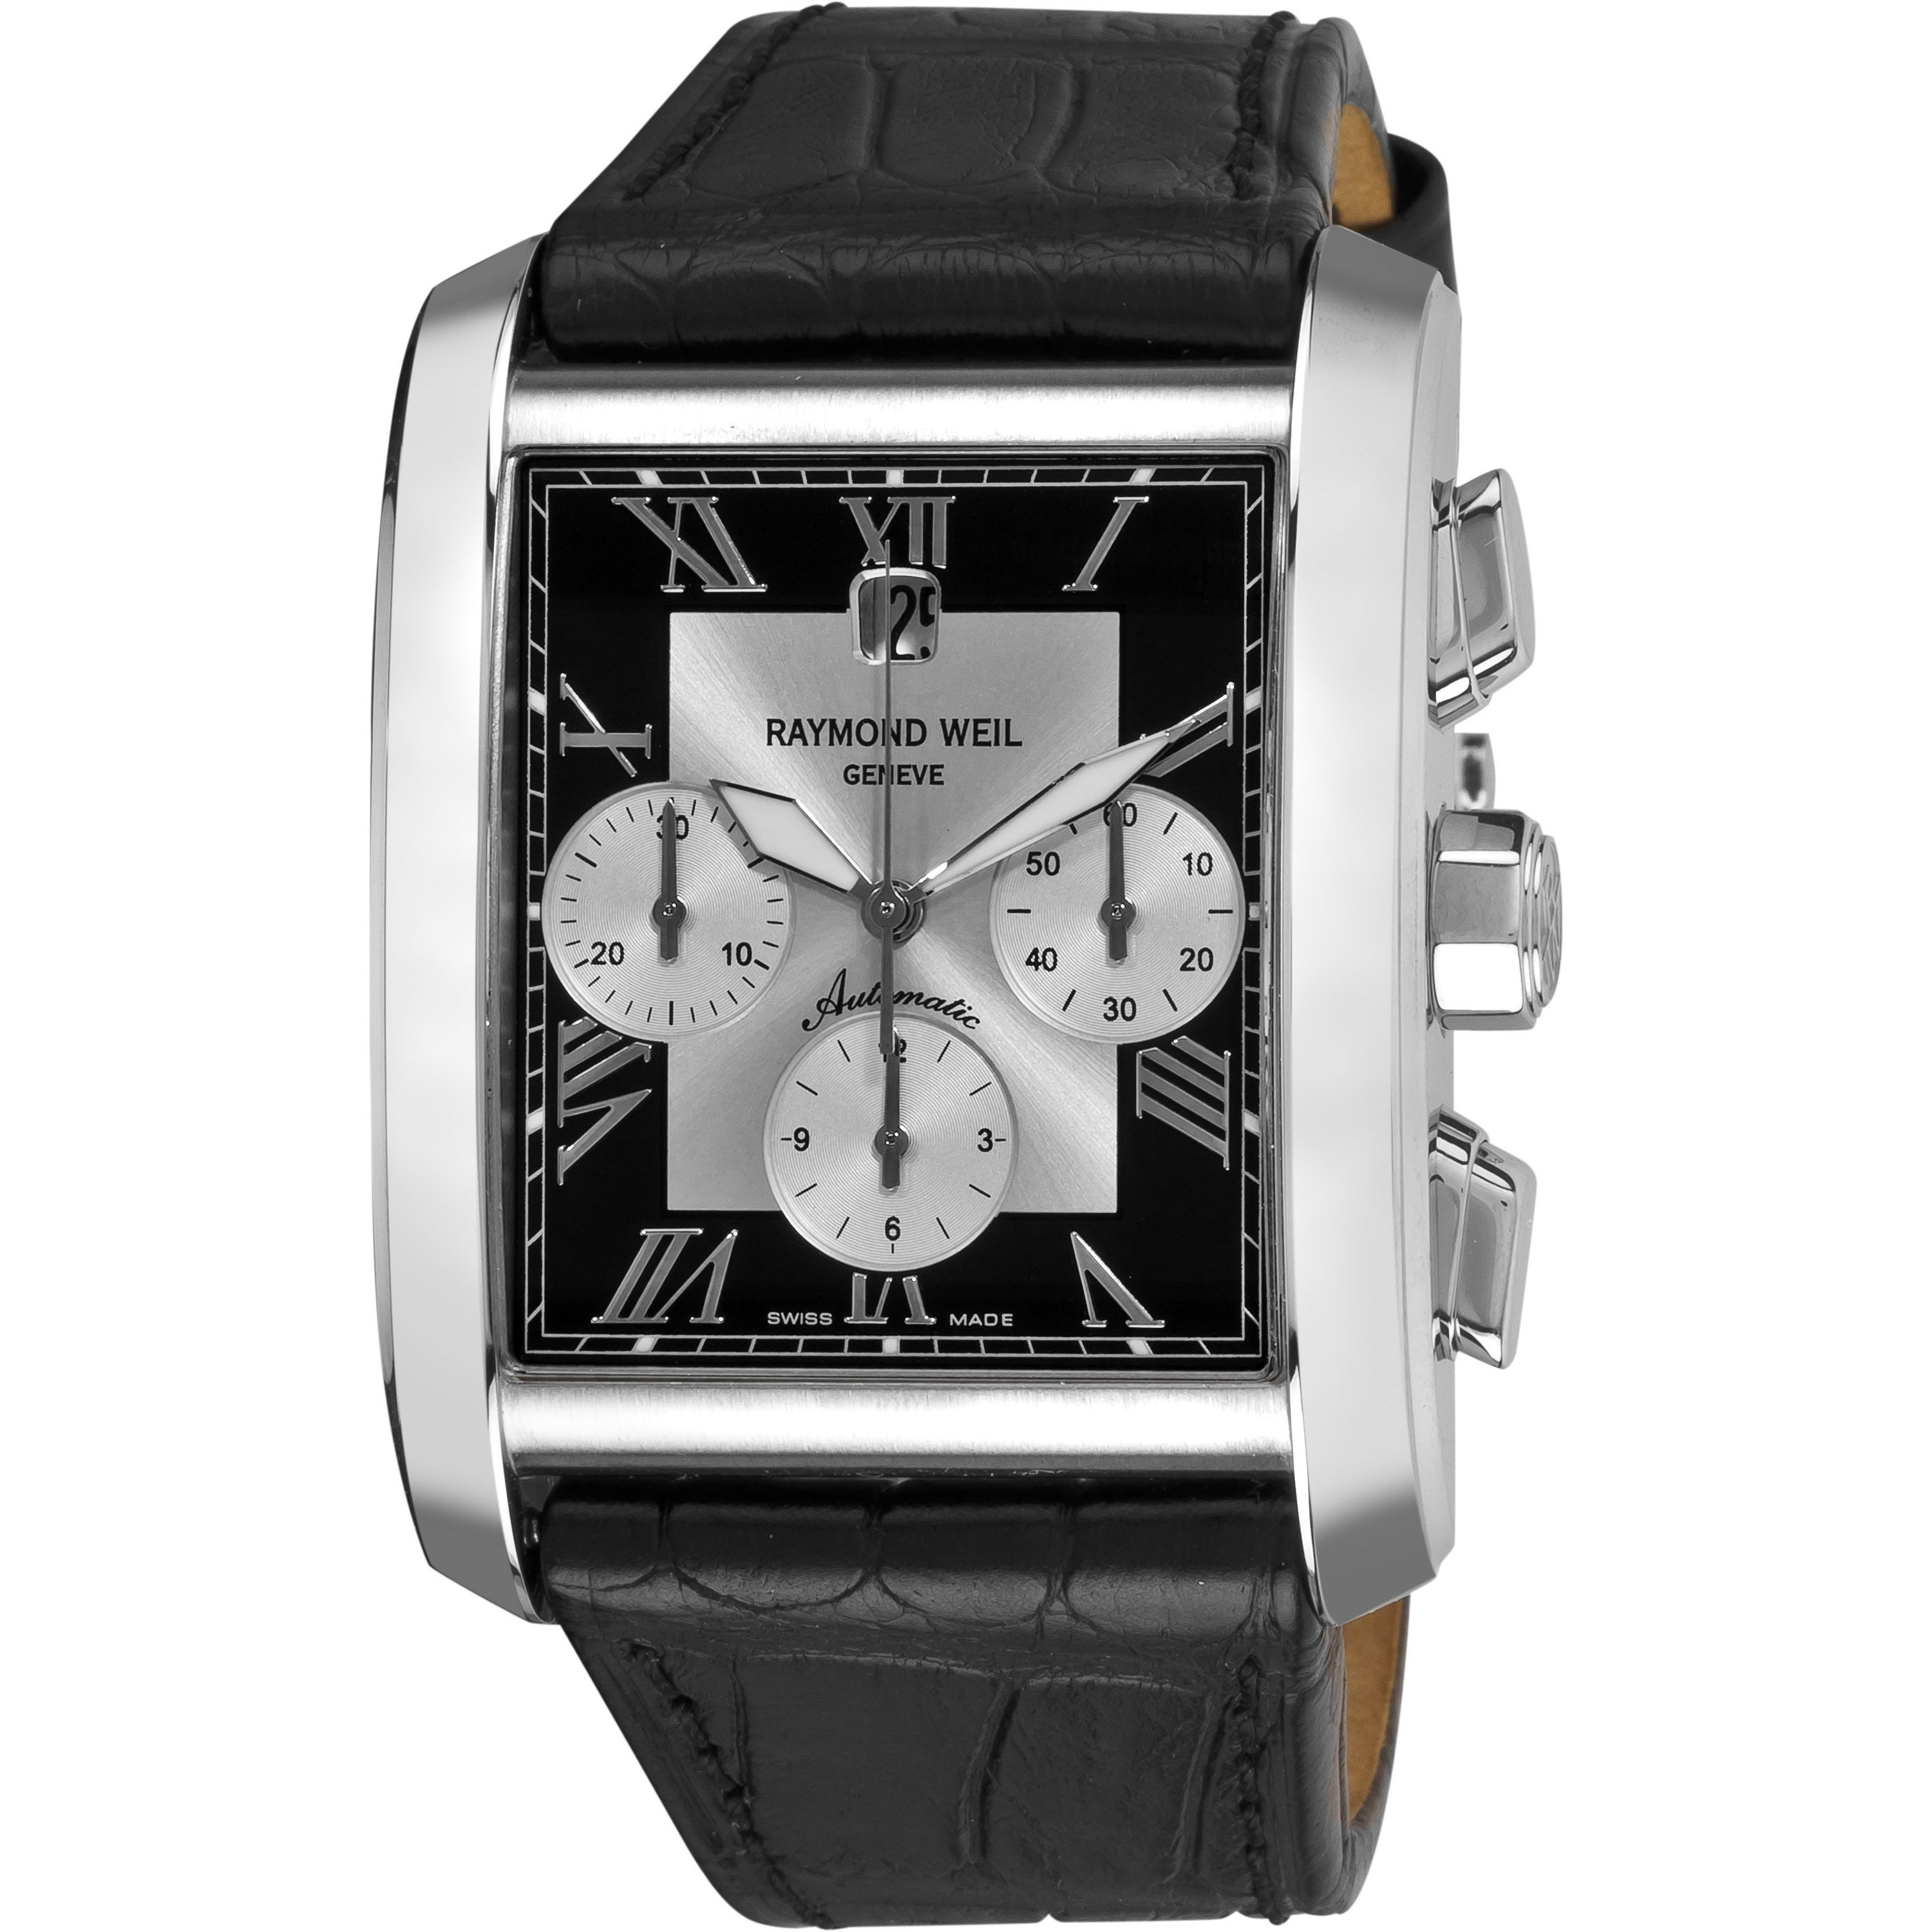 Raymond Weil Men's 'Don Giovanni' Black Leather Strap Automatic Watch